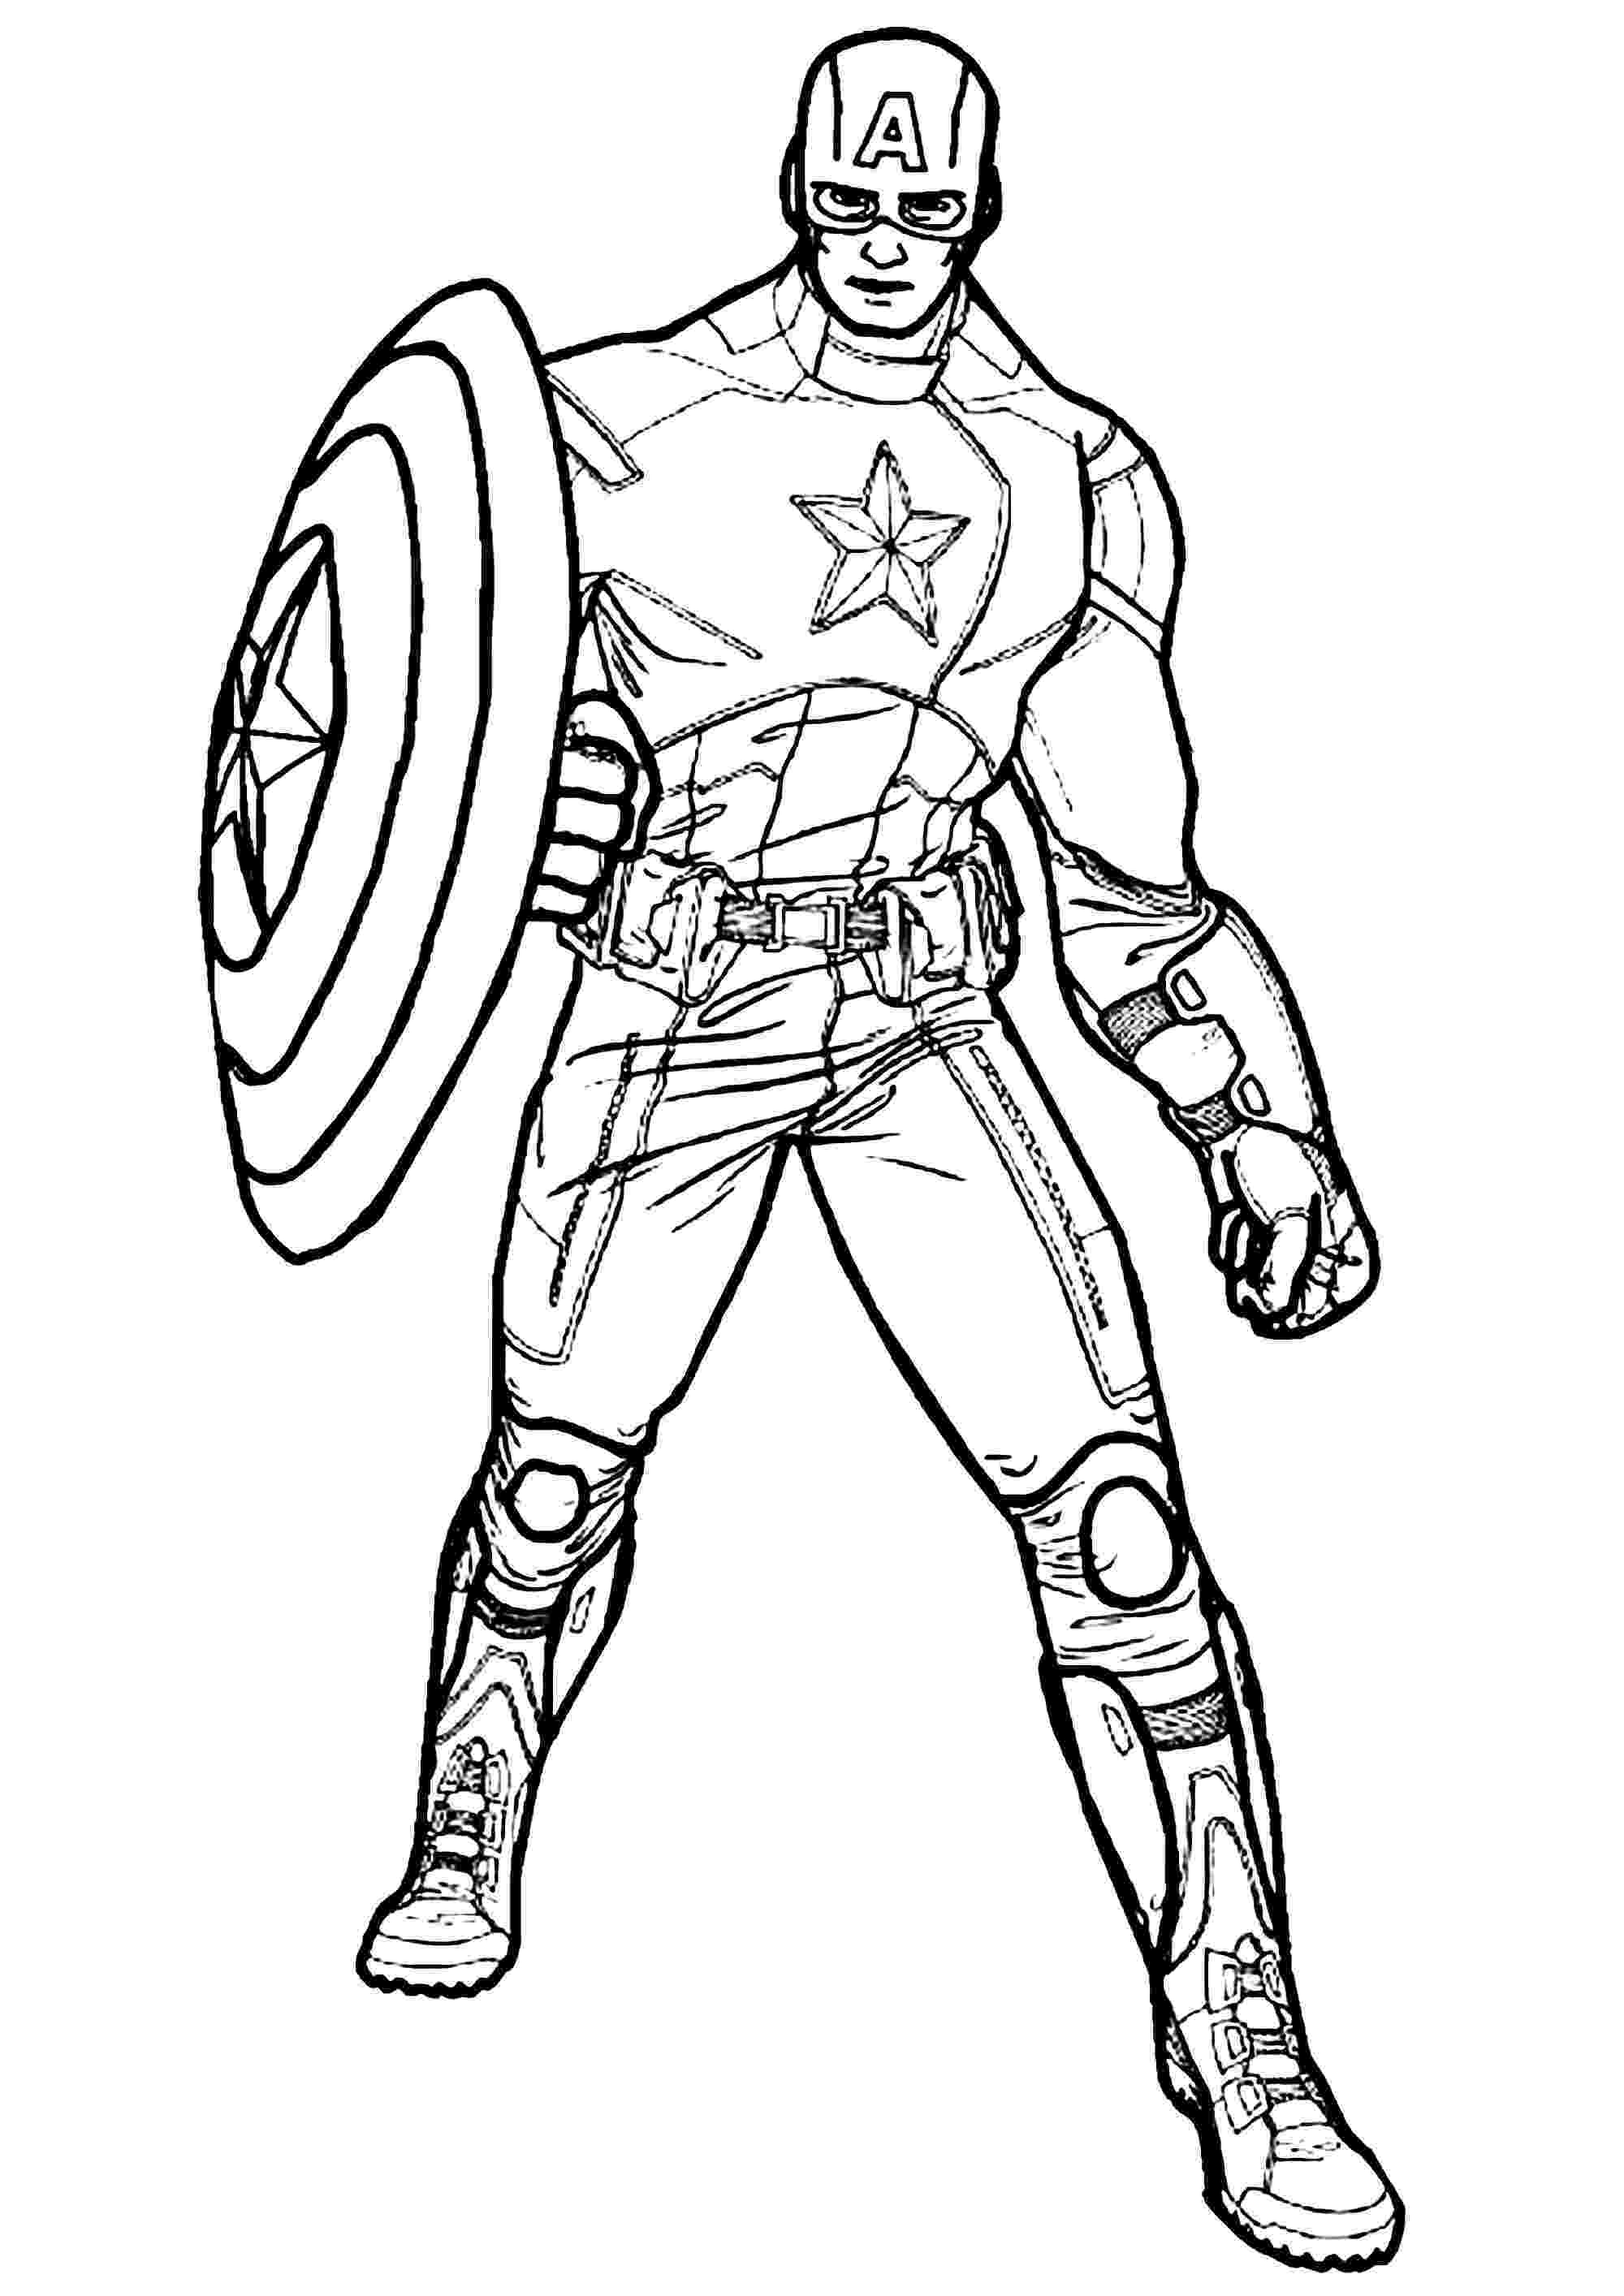 free printable captain america coloring pages avengers coloring pages best coloring pages for kids america coloring pages captain printable free